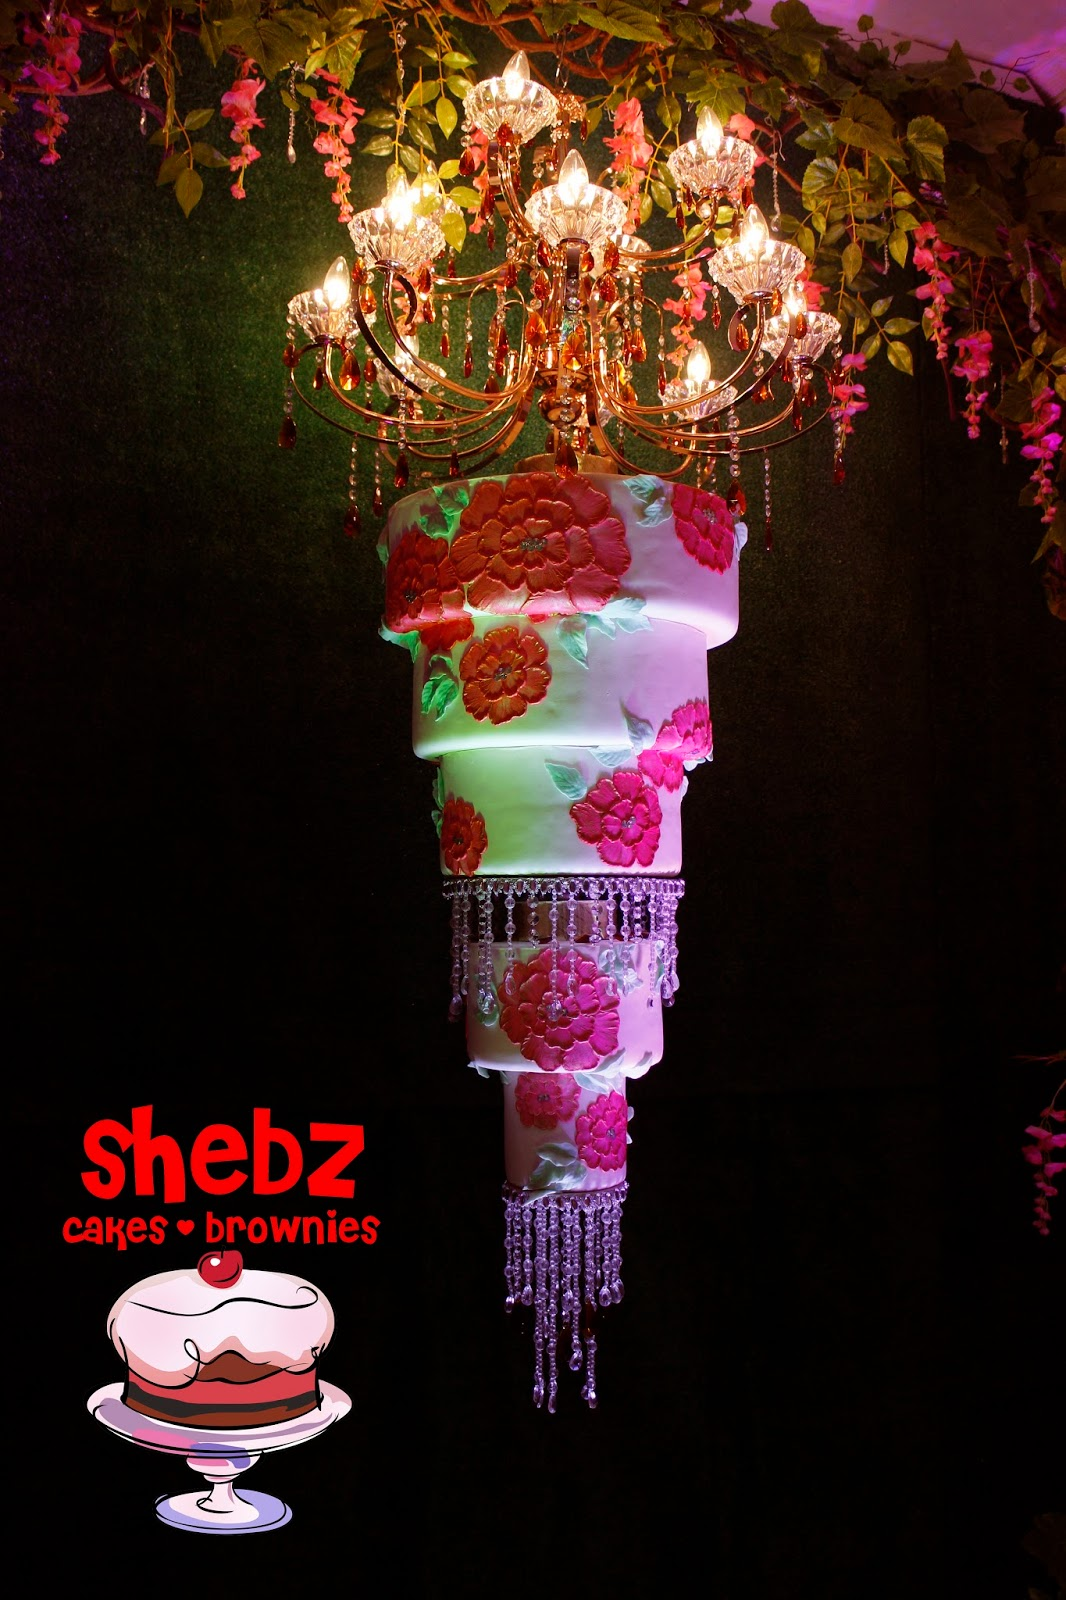 Shebz cakes cebu cebu chandelier cake painting trimmed with swags skip the typical 3 tiered white wedding cake and go for something unique unusual and unconventional that will represent you both arubaitofo Image collections